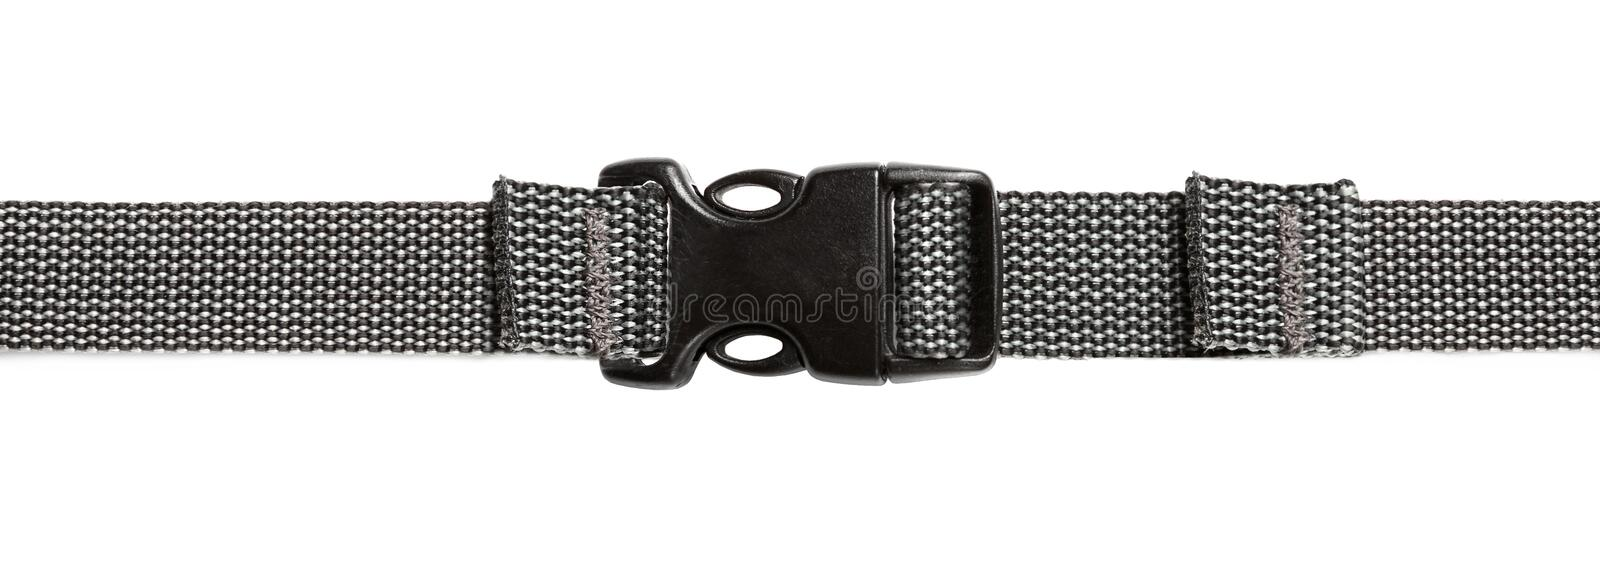 Black plastic buckle on strap. Isolated on white background stock photography